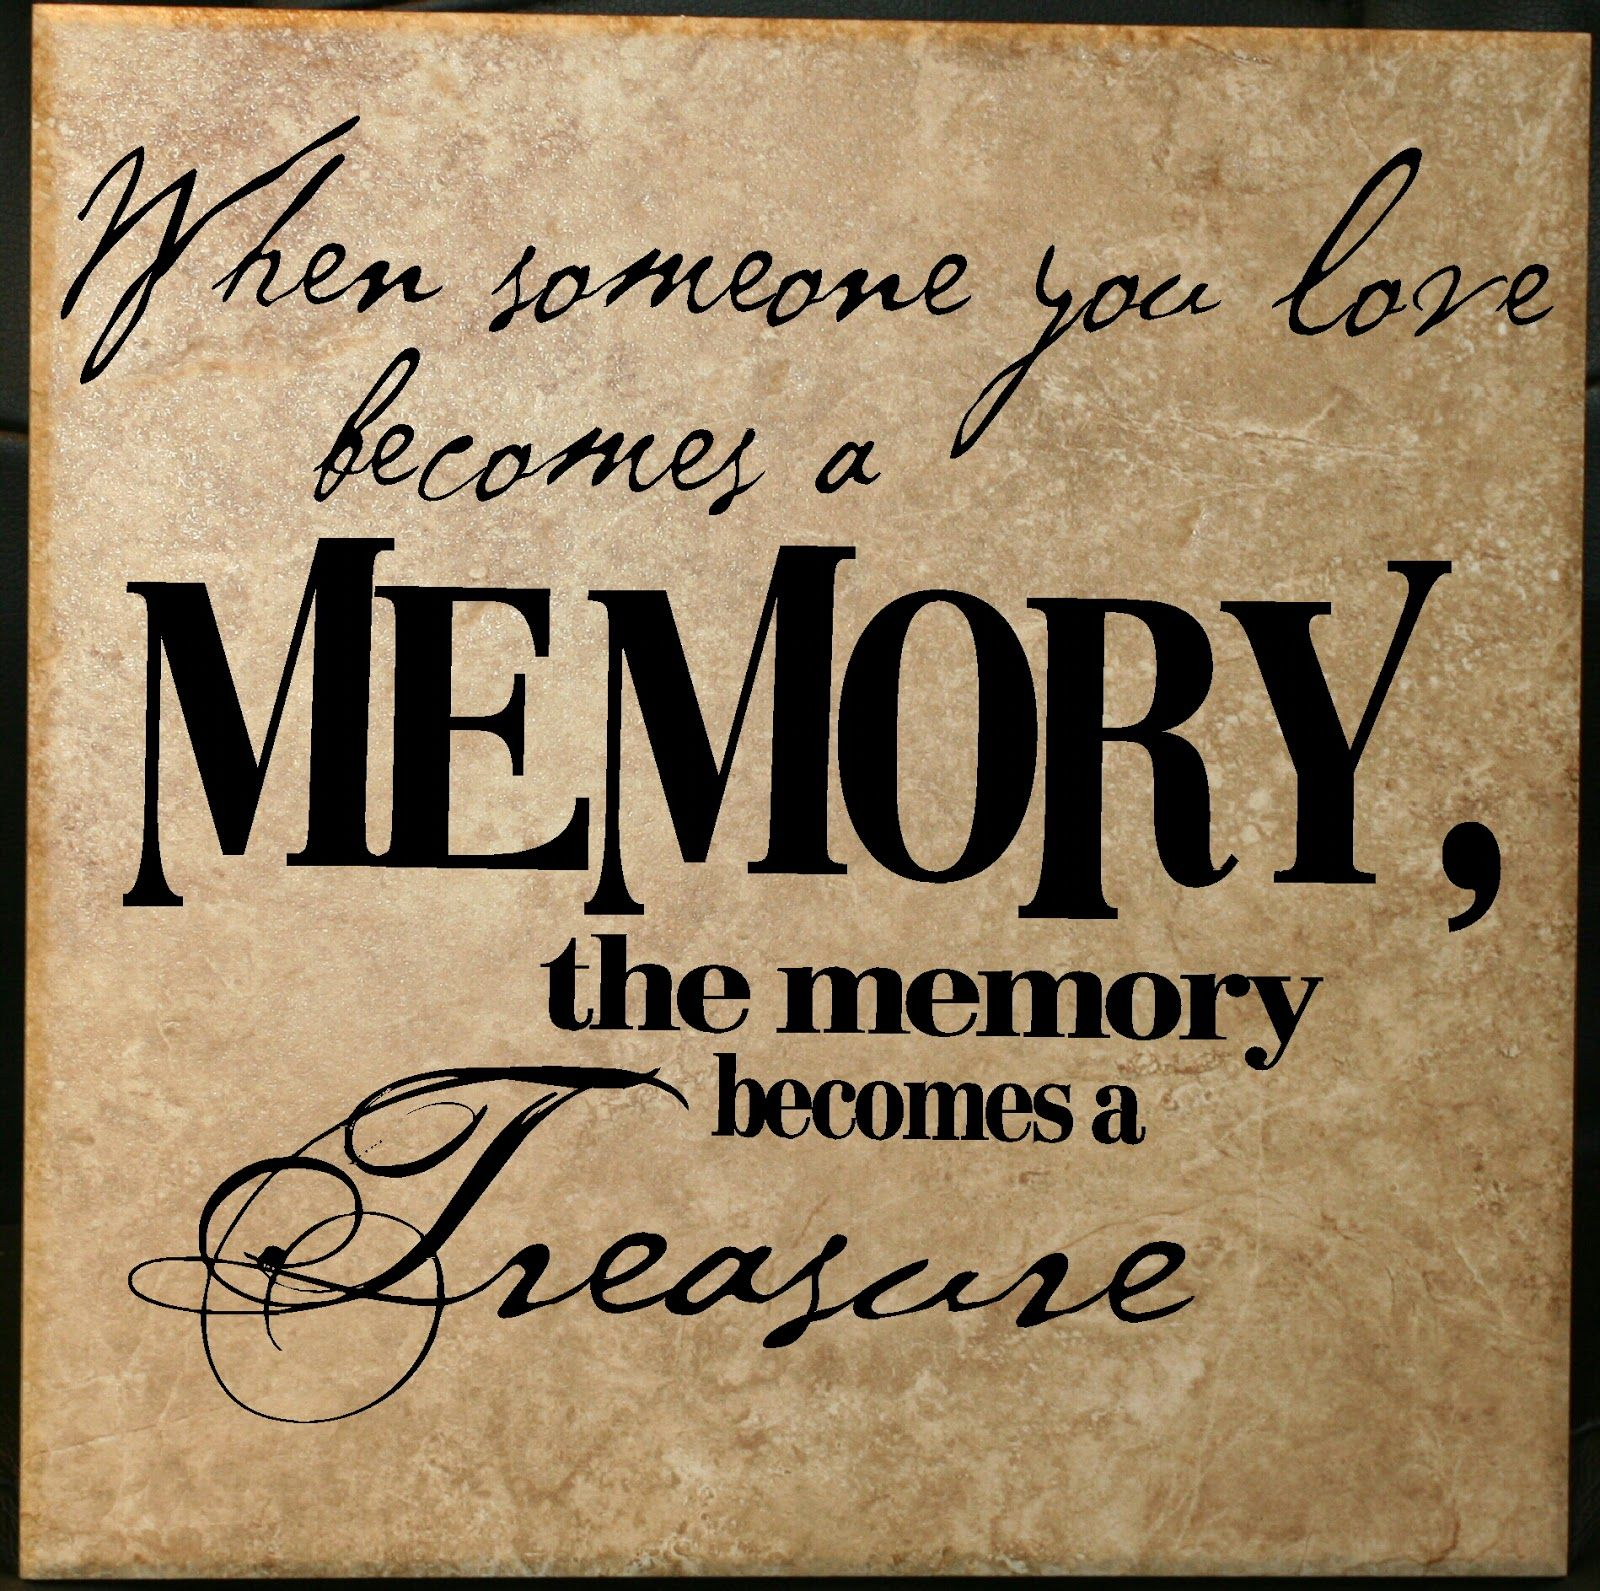 Quotes For A Loss Of A Loved One The Memory Becomes A Treasure  Words To Remember  Pinterest